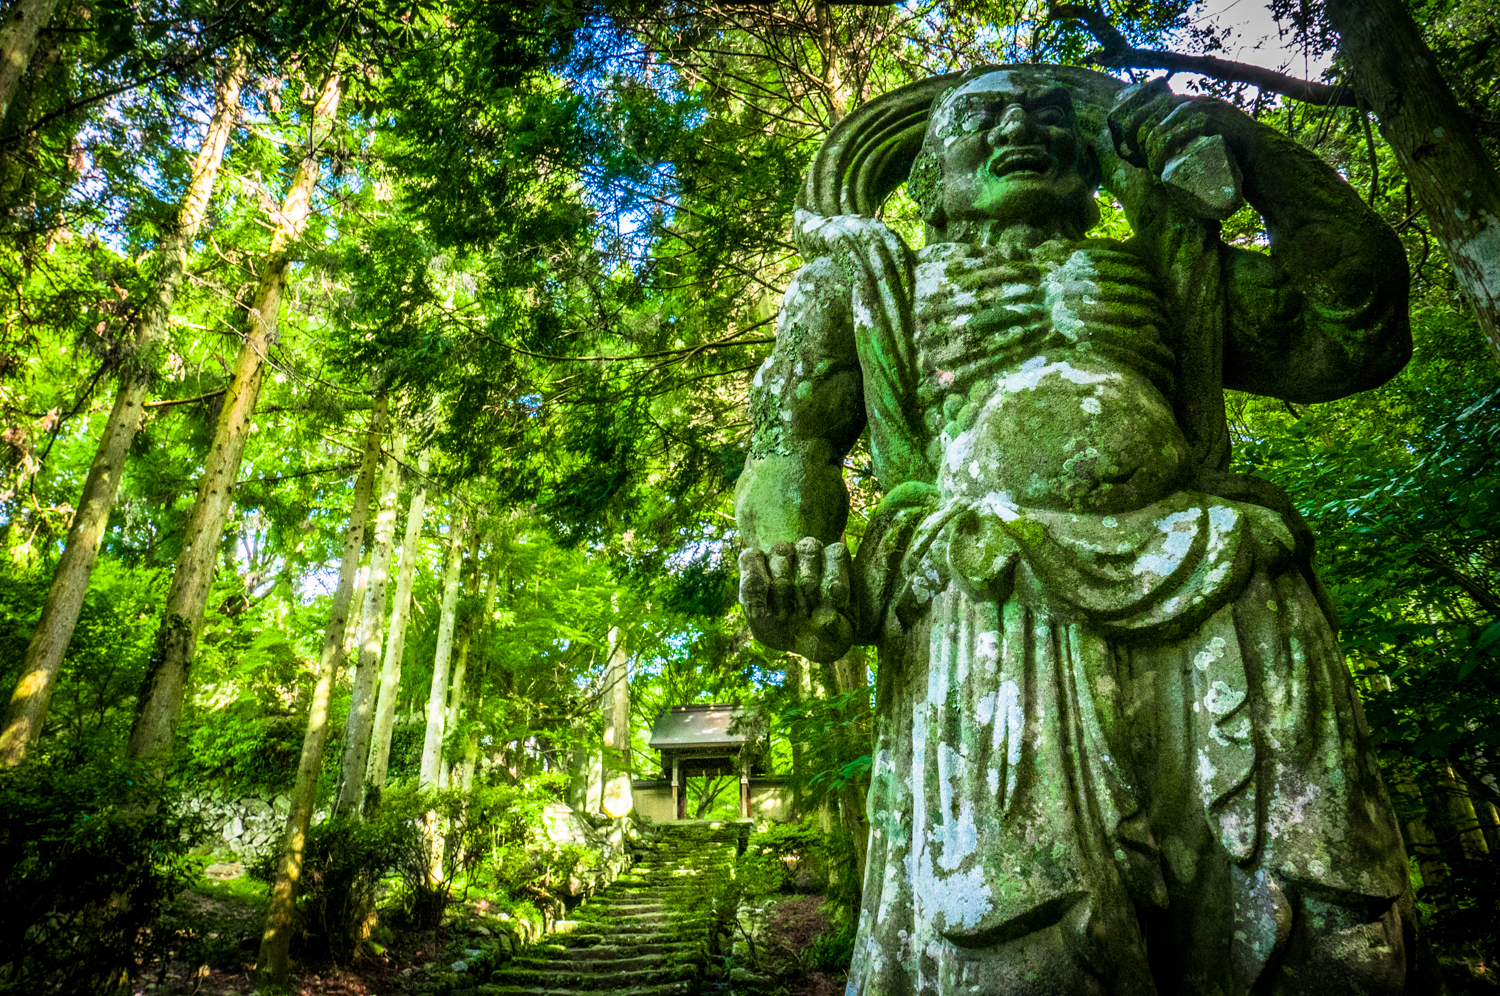 Kunisaki Futago-ji Niomon stone statues covered in moss in a green forest by Athena Lam